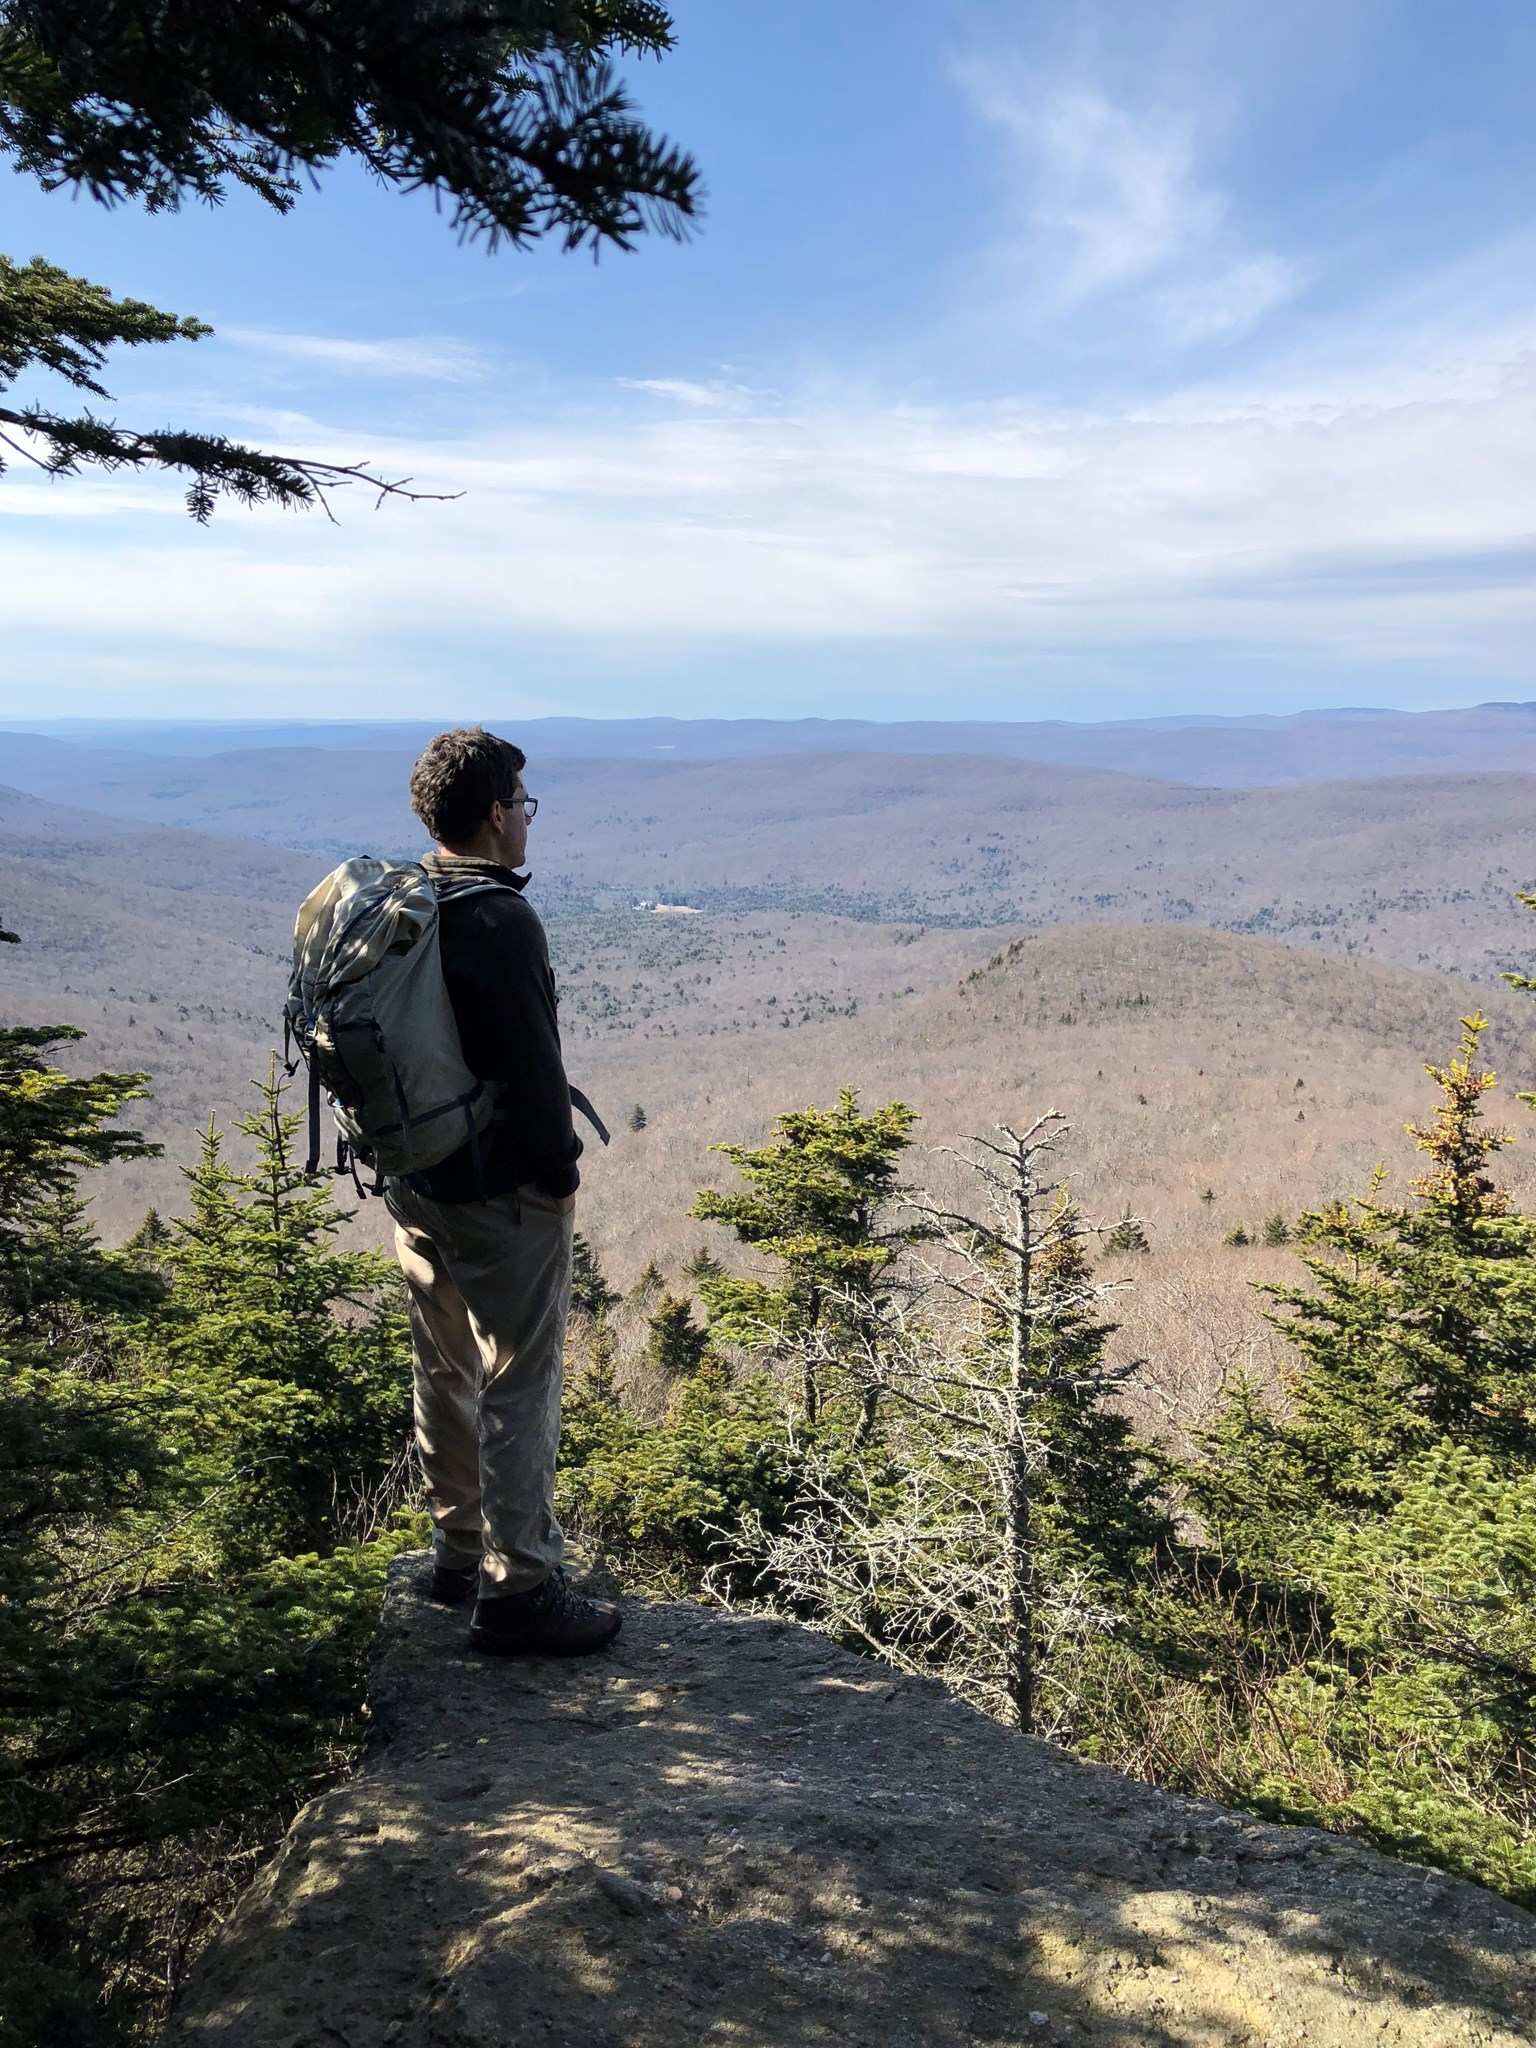 Taking in the view from Plateau Mountain in the Catskills, Feb 2018